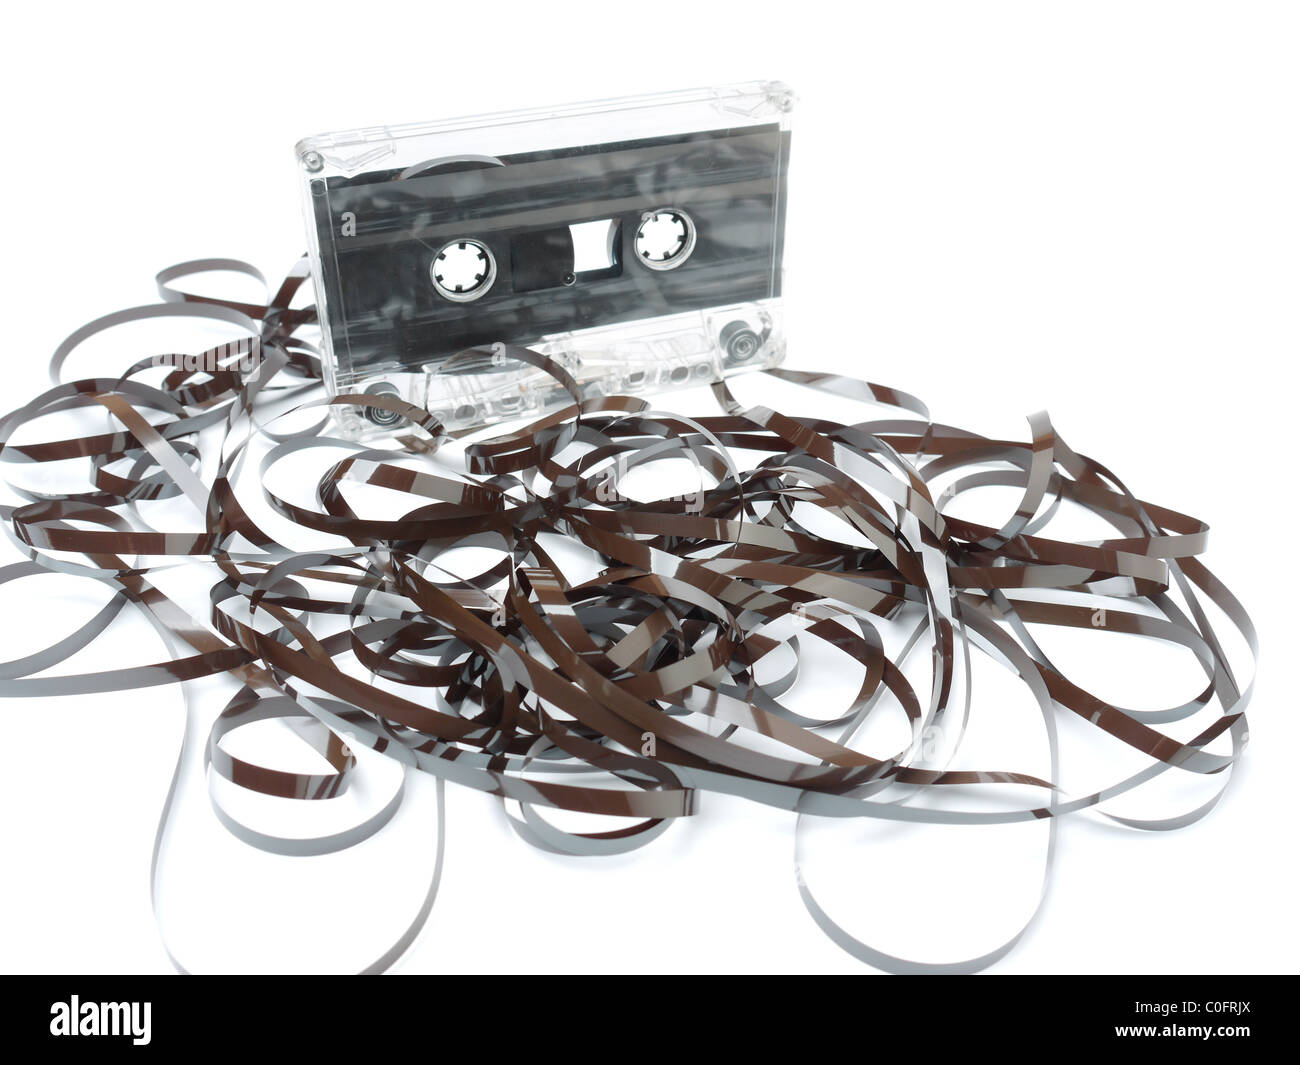 Old audio cassette tape pulled out and tangled on white background - Stock Image